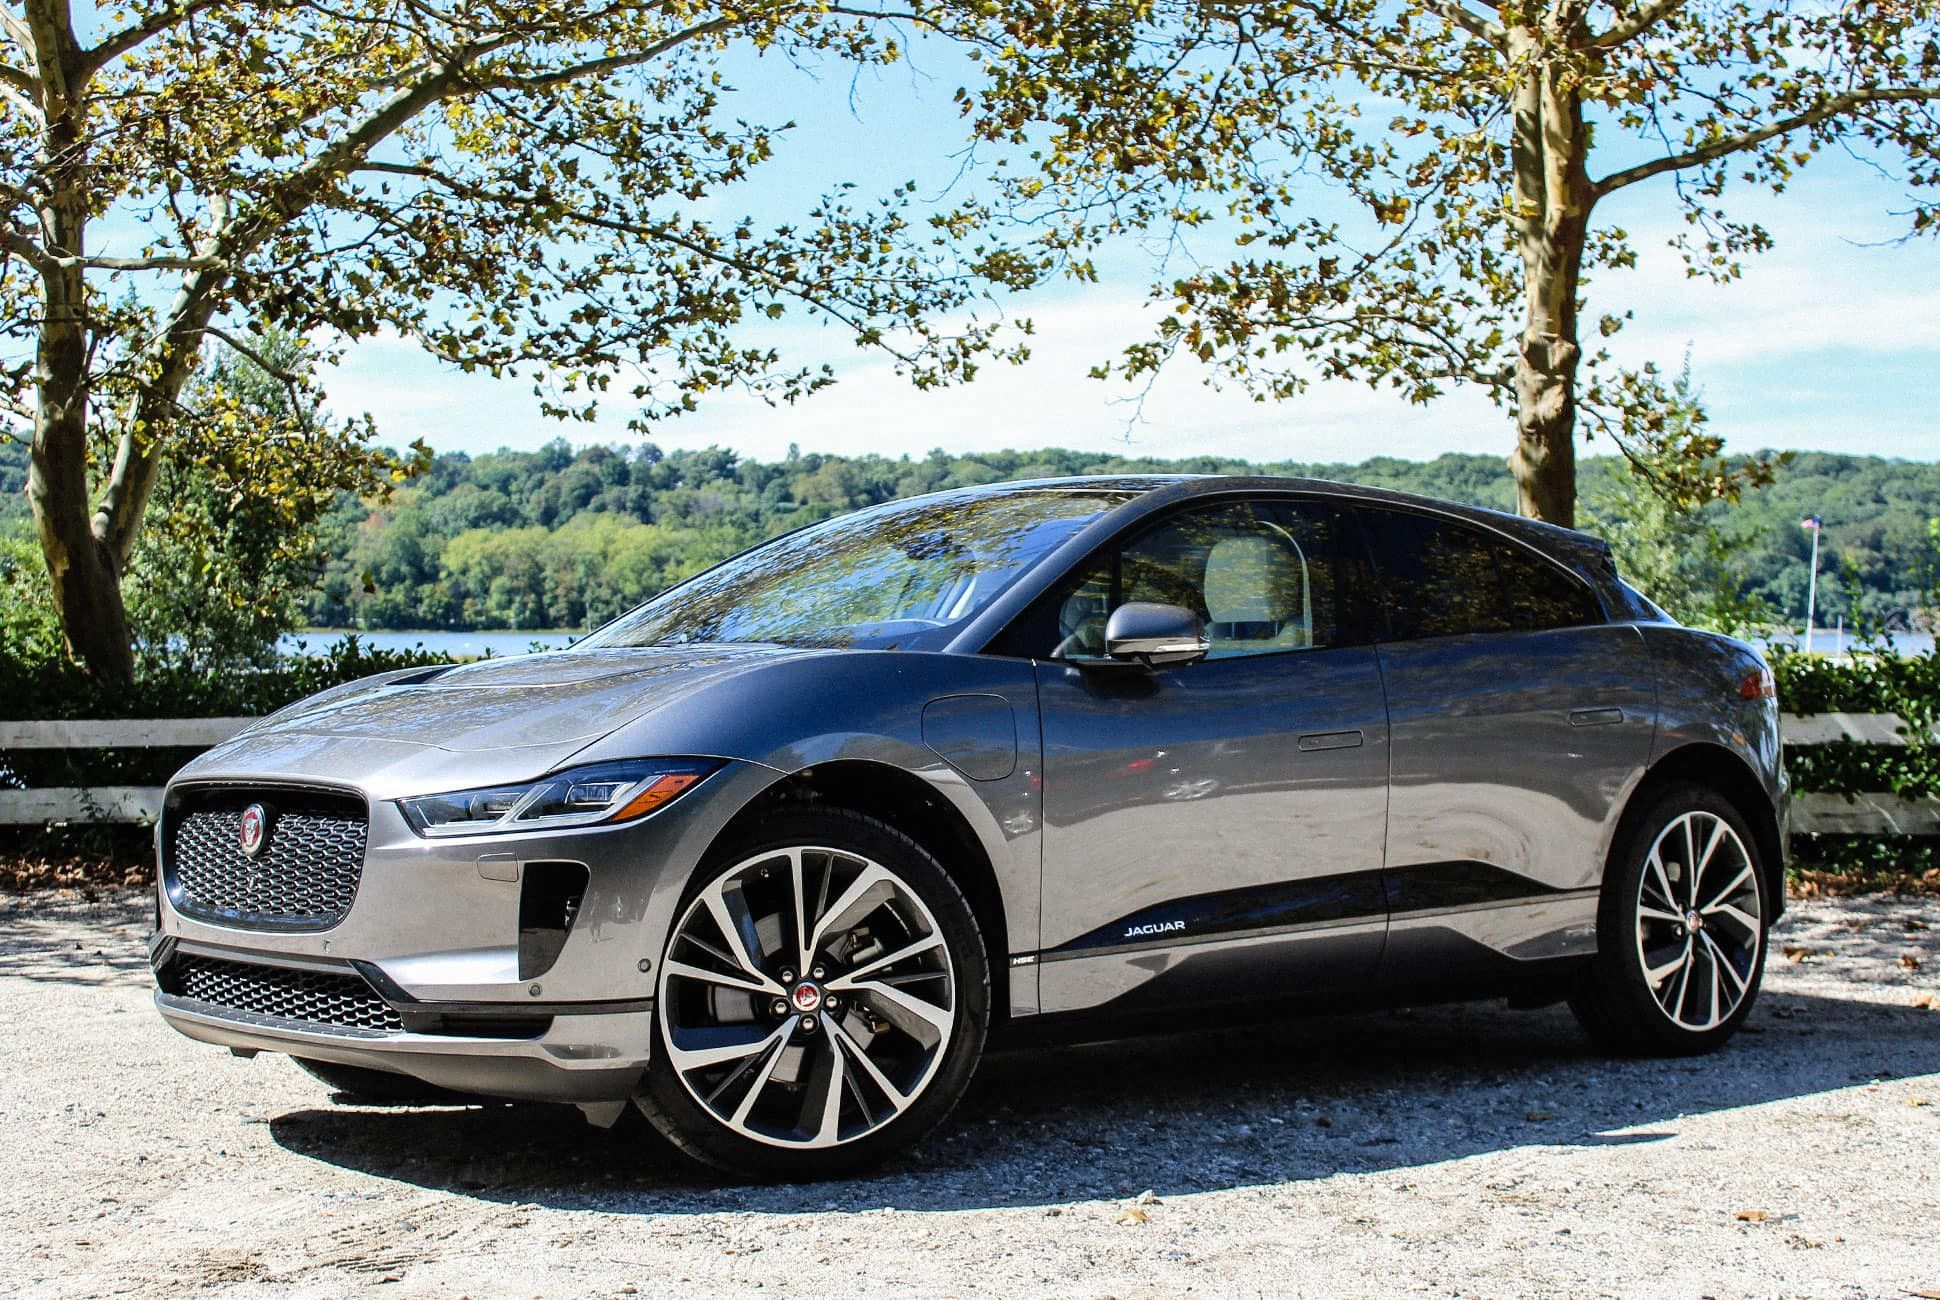 Jaguar I Pace Review 2020 Specs And Review Di 2020 Aston Martin Indonesia